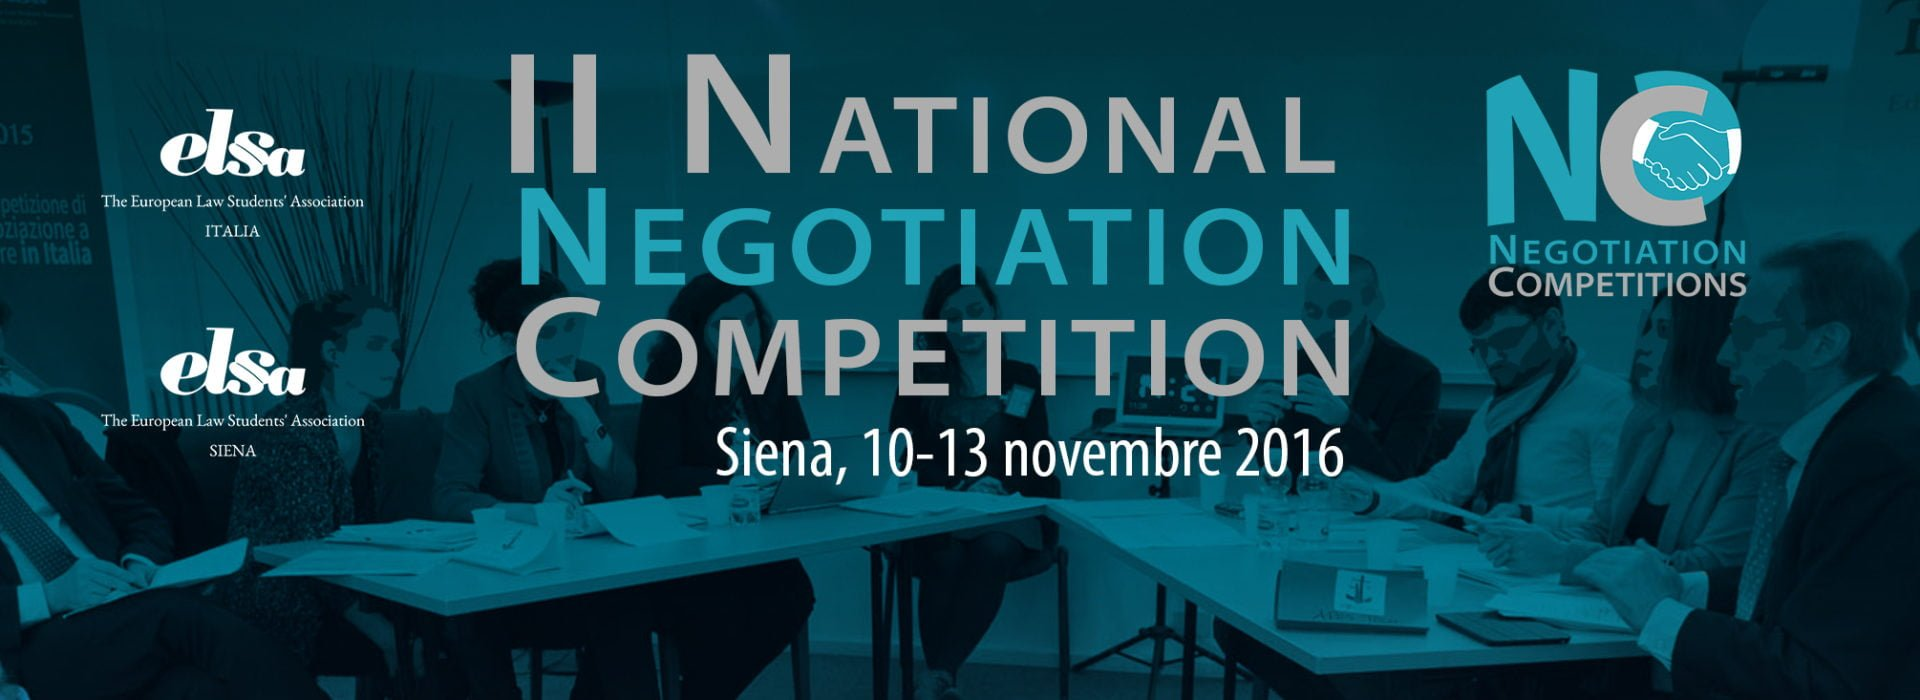 II NATIONAL NEGOTIATIONS COMPETITIONS